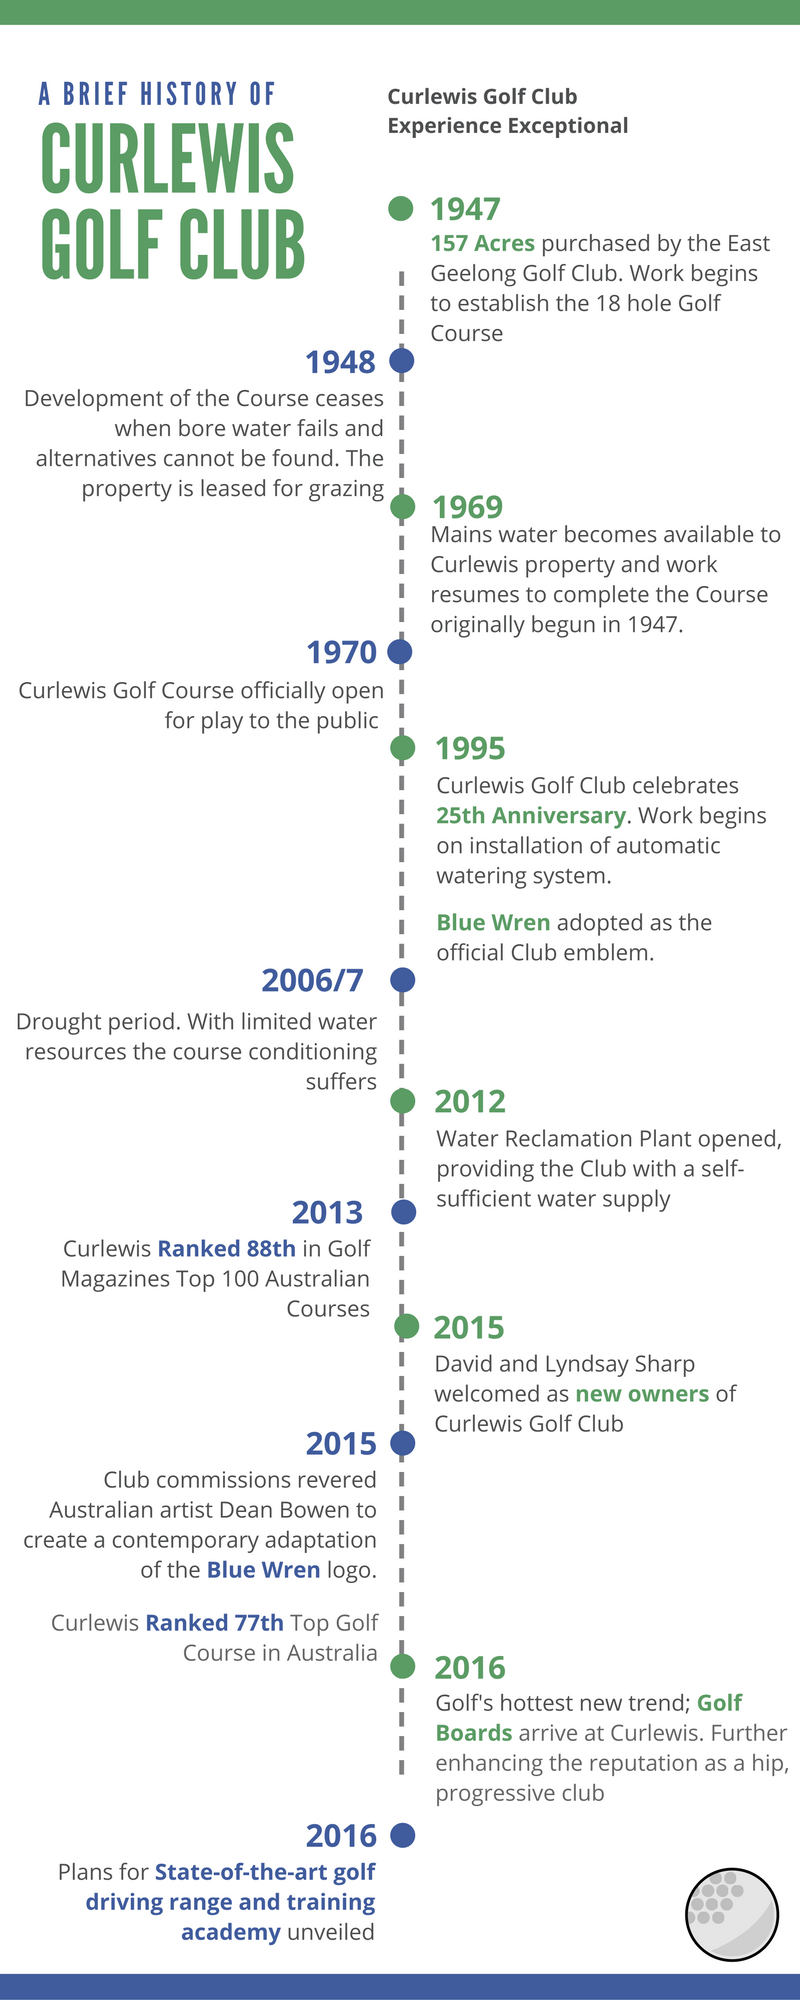 Curlewis Golf Club. History of the Club